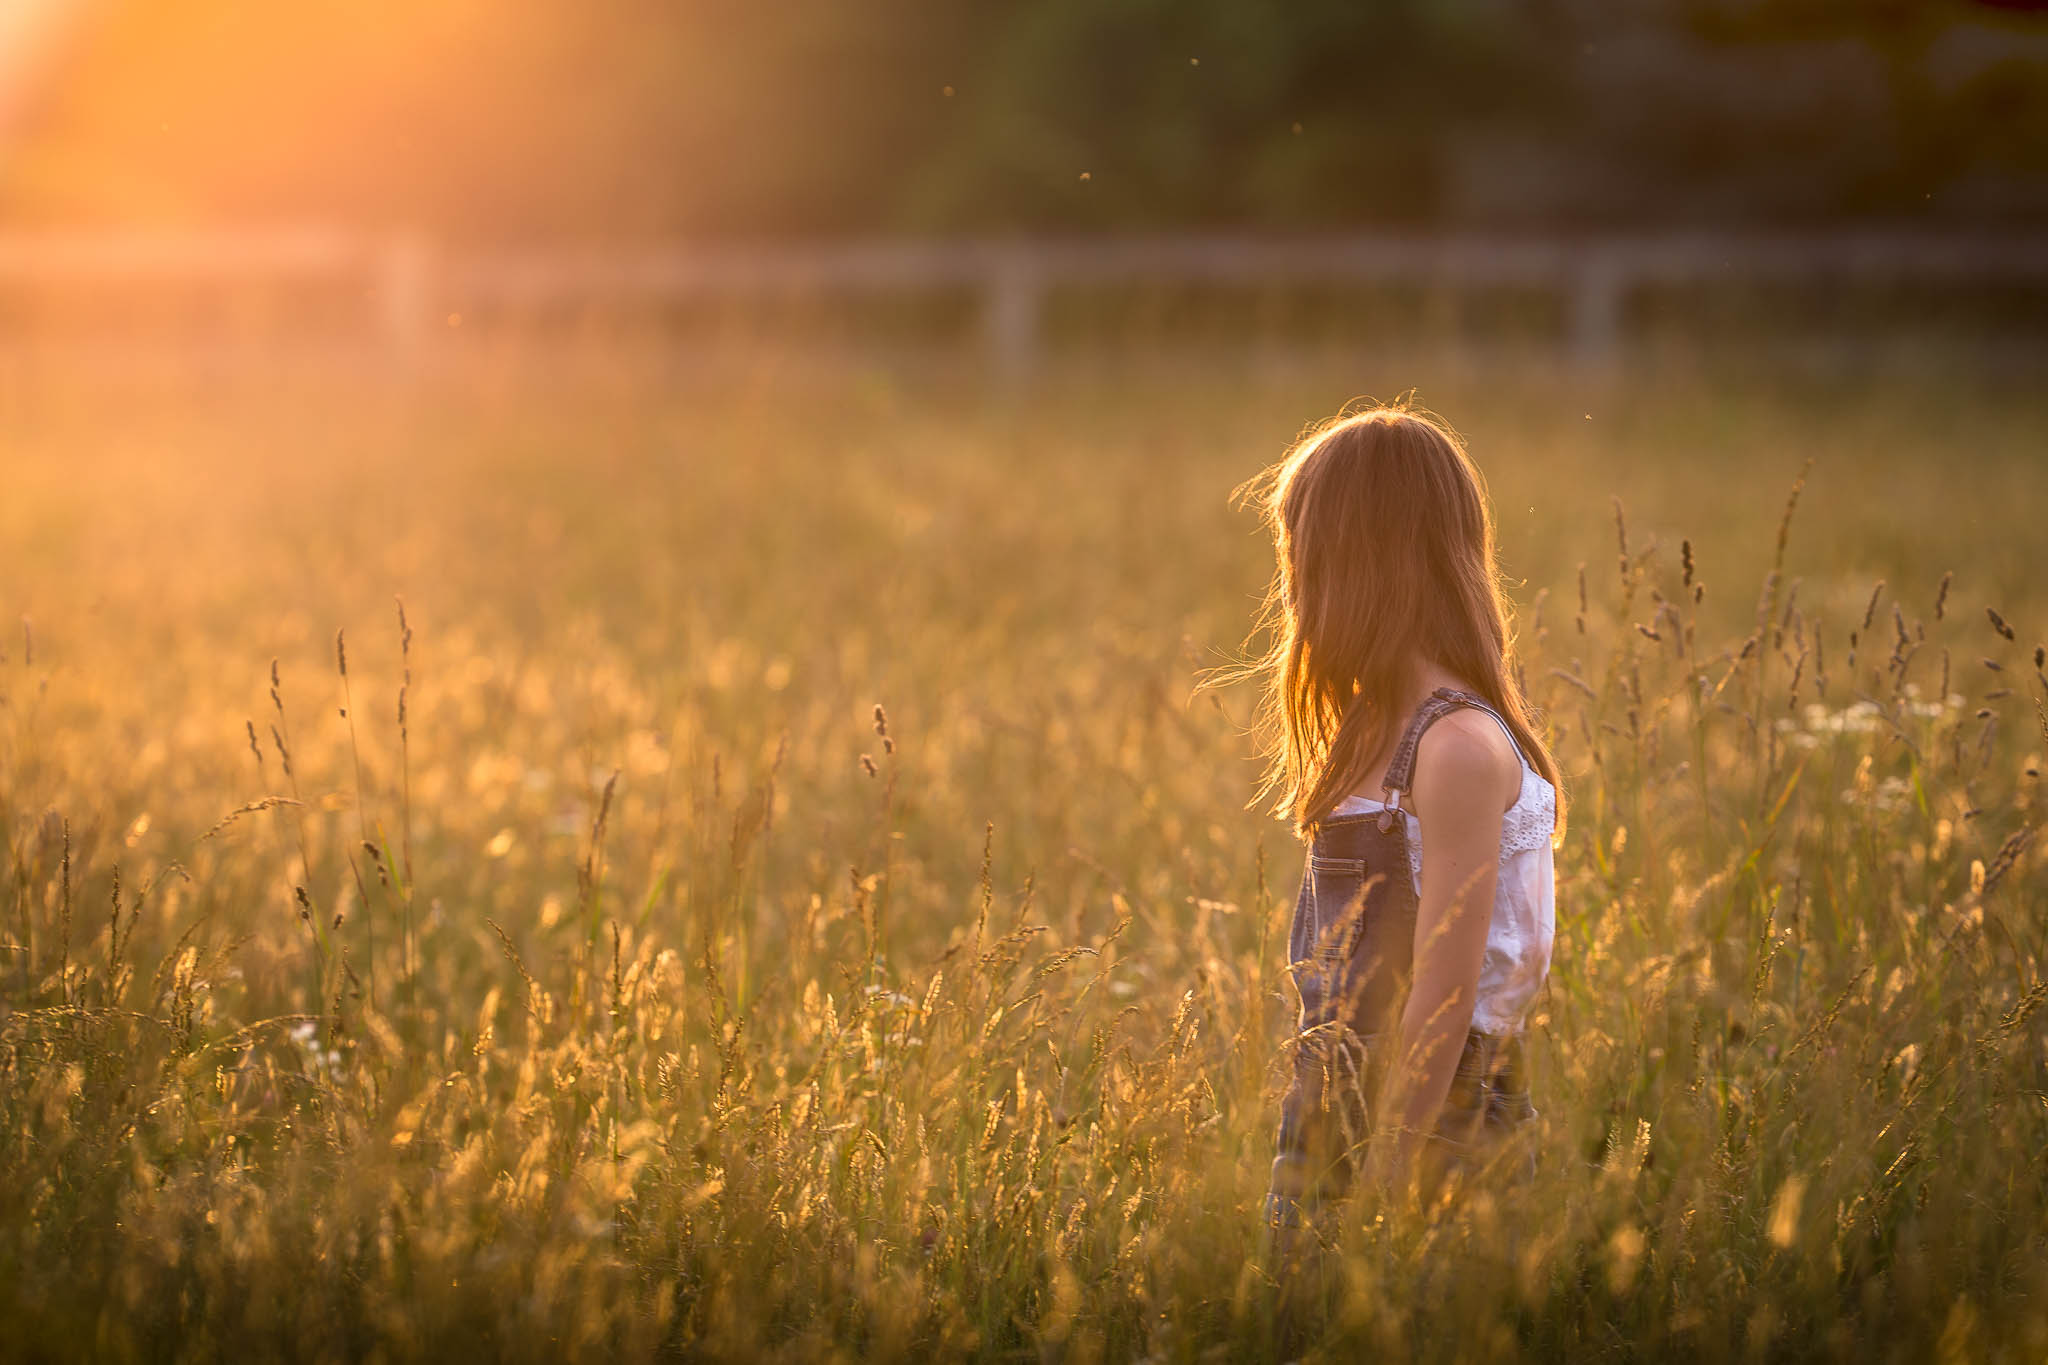 photograph portrait of little girl in long grass in a field watching the sunset